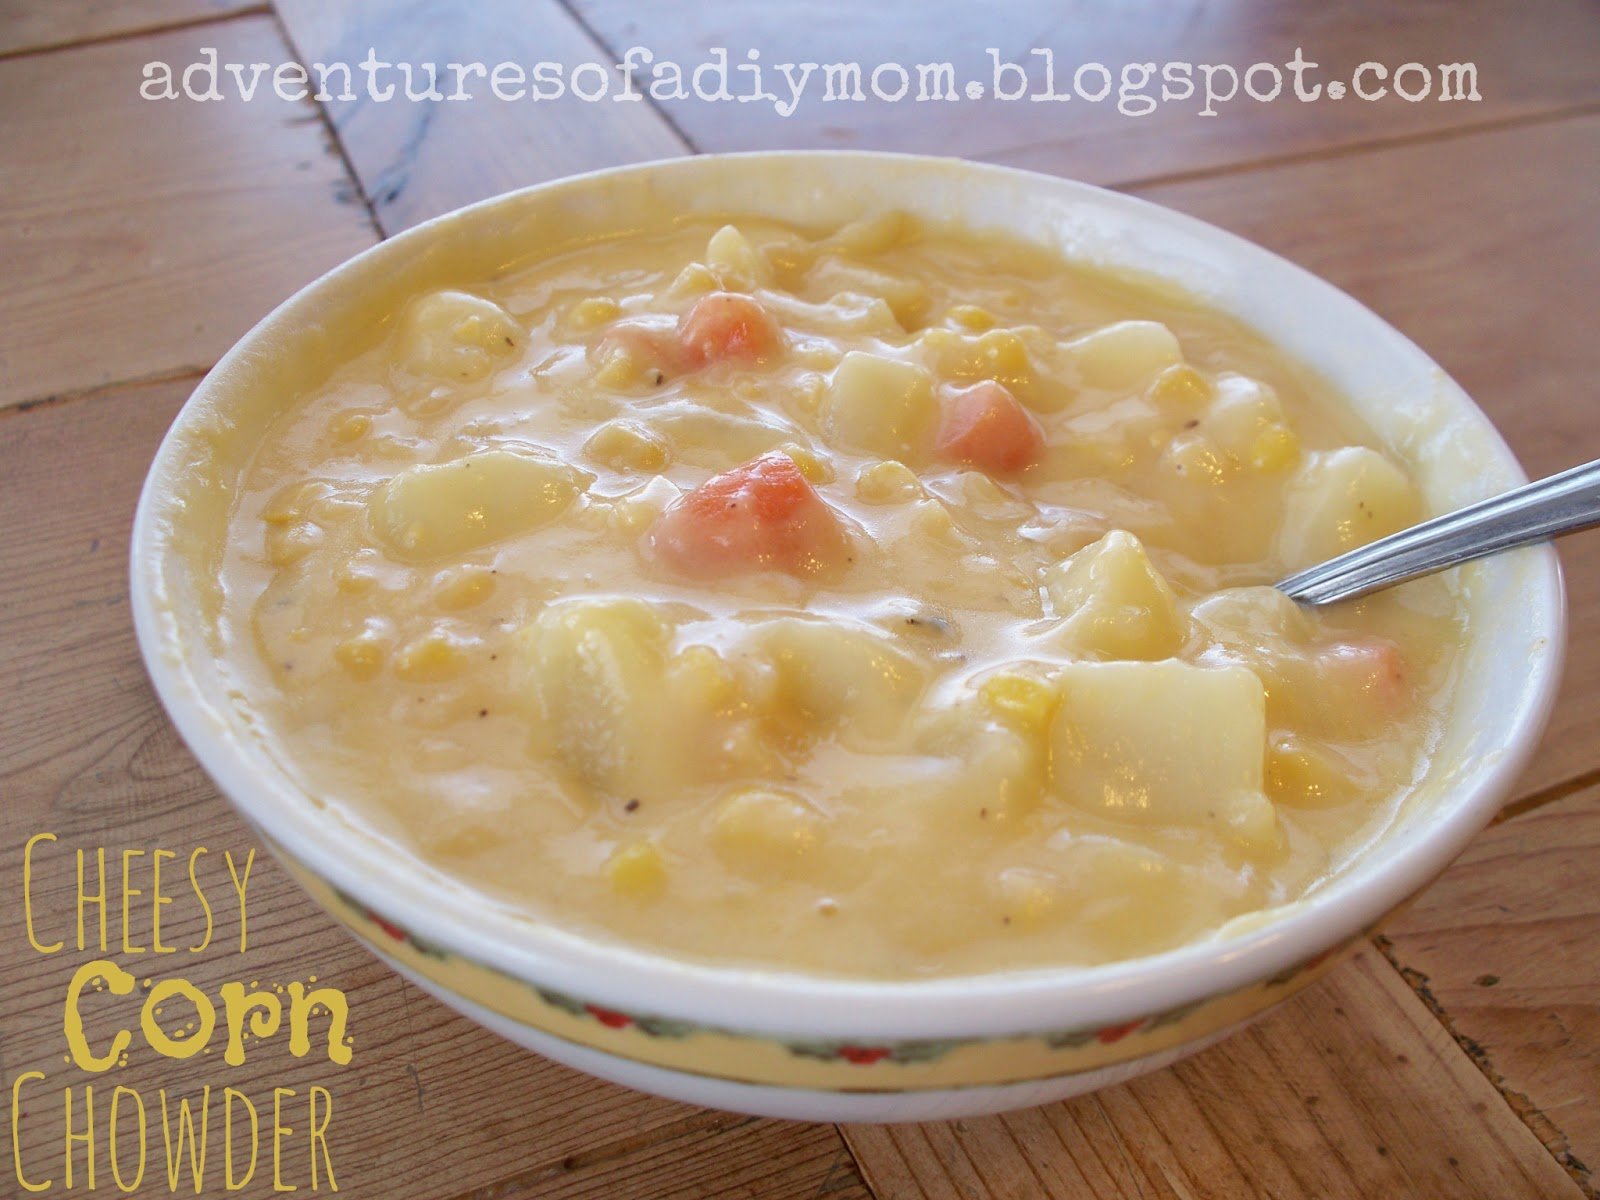 ... Corn Chowder is full of potatoes, carrots and corn. It's sure to warm